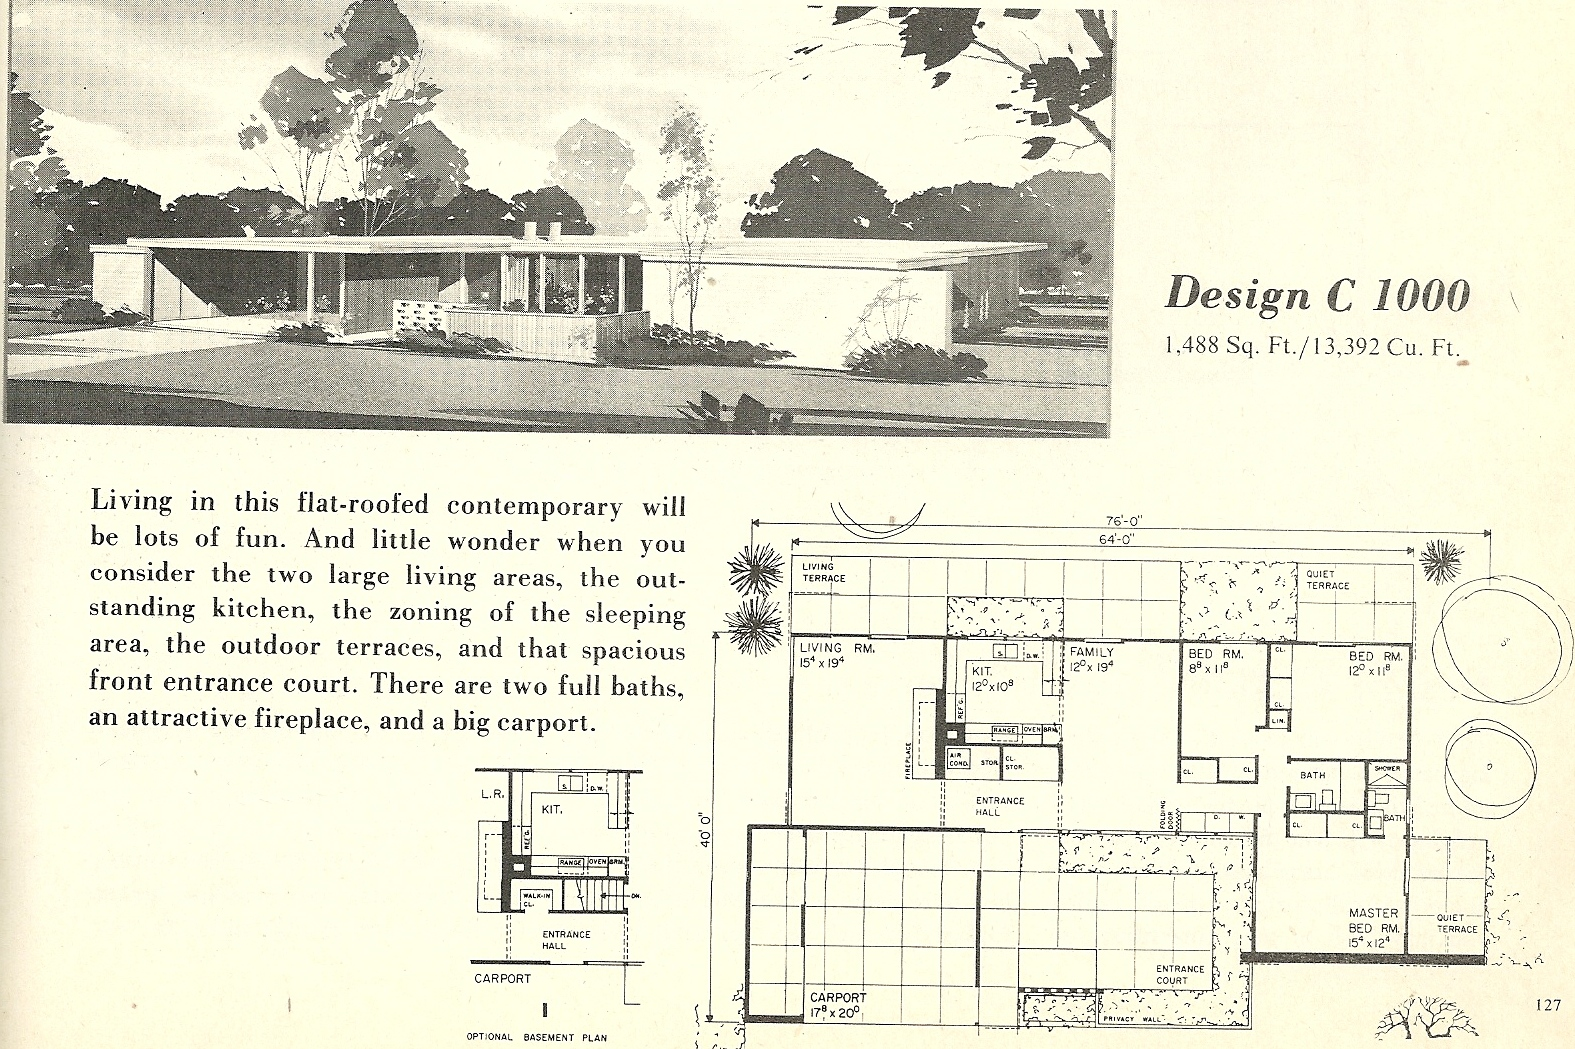 Vintage House Plans 1000 | Antique Alter Ego